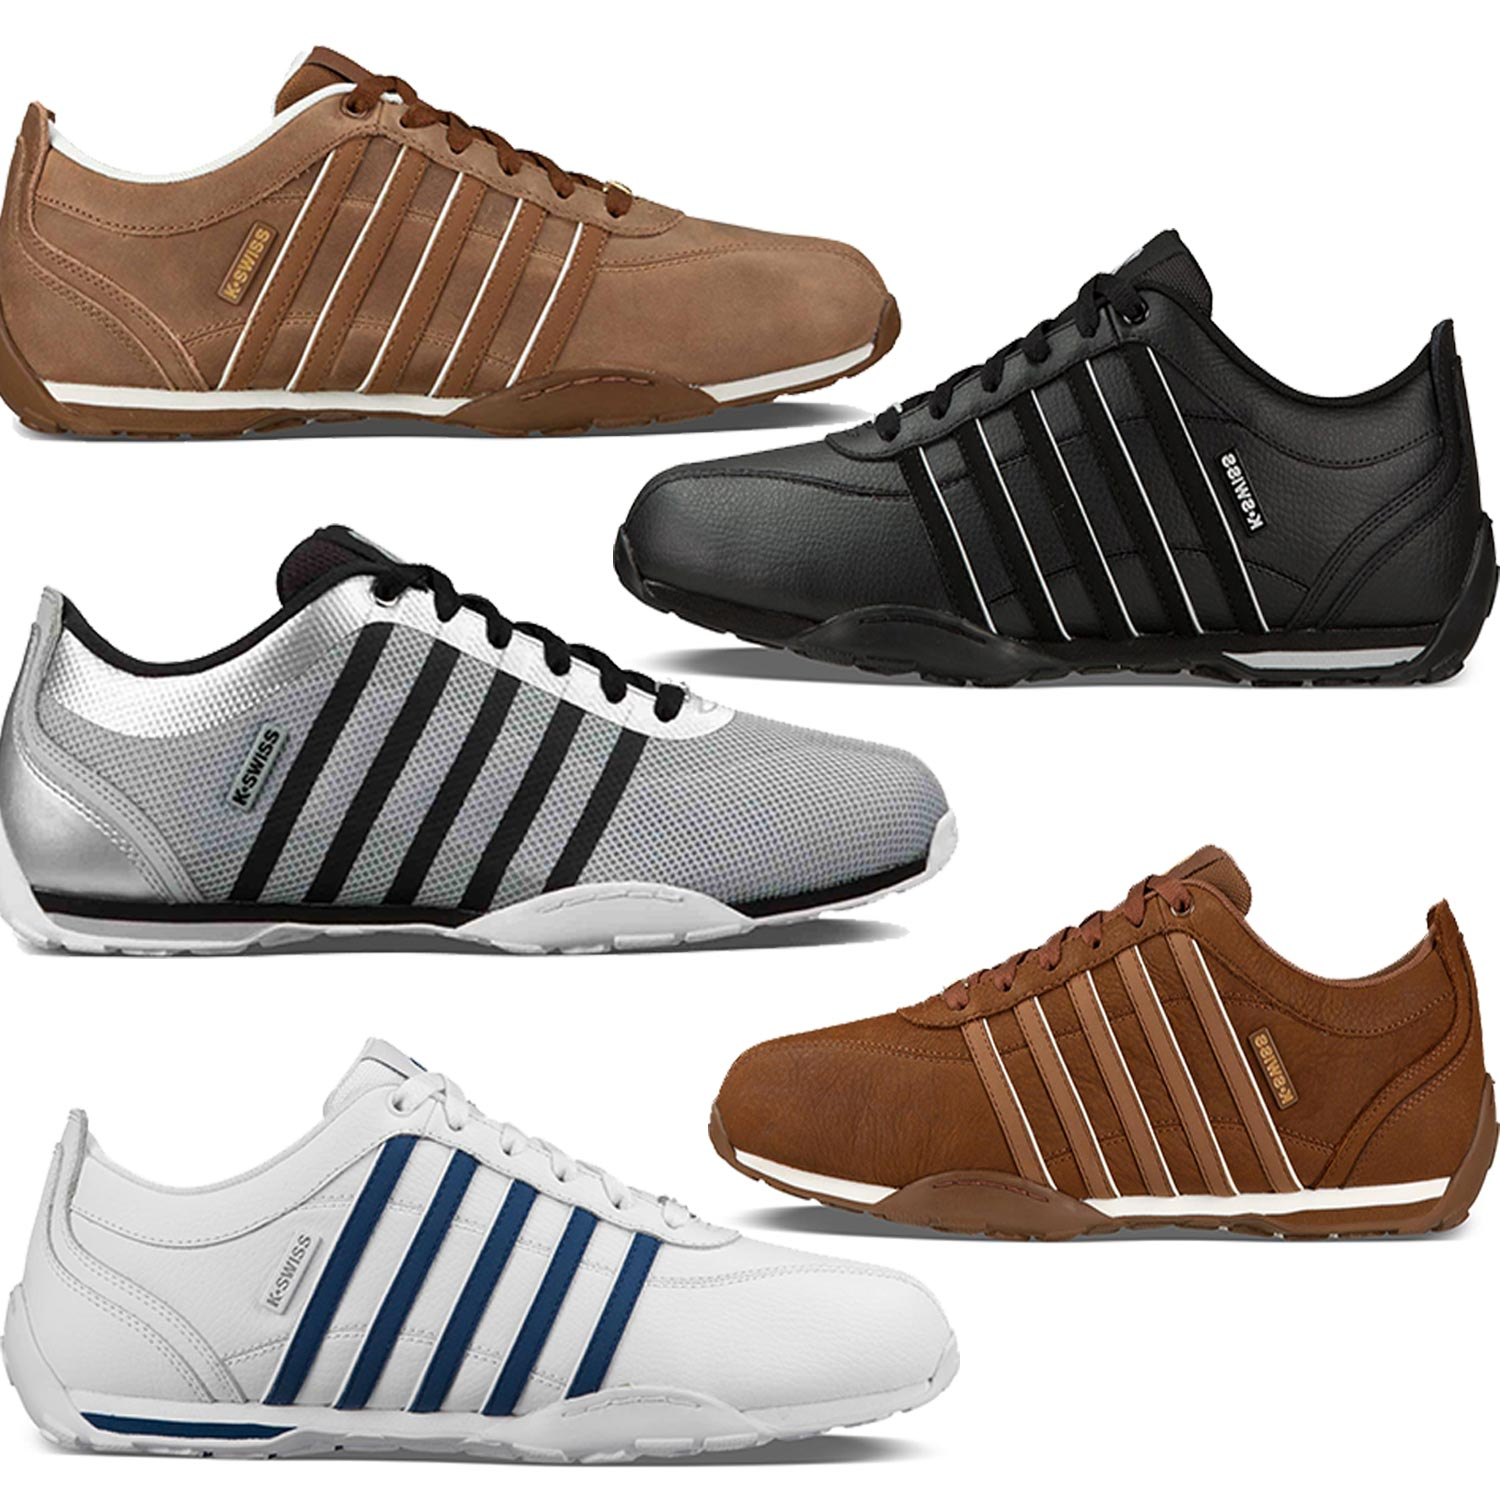 k swiss arvee 1 5 shoes trainers different colors ebay